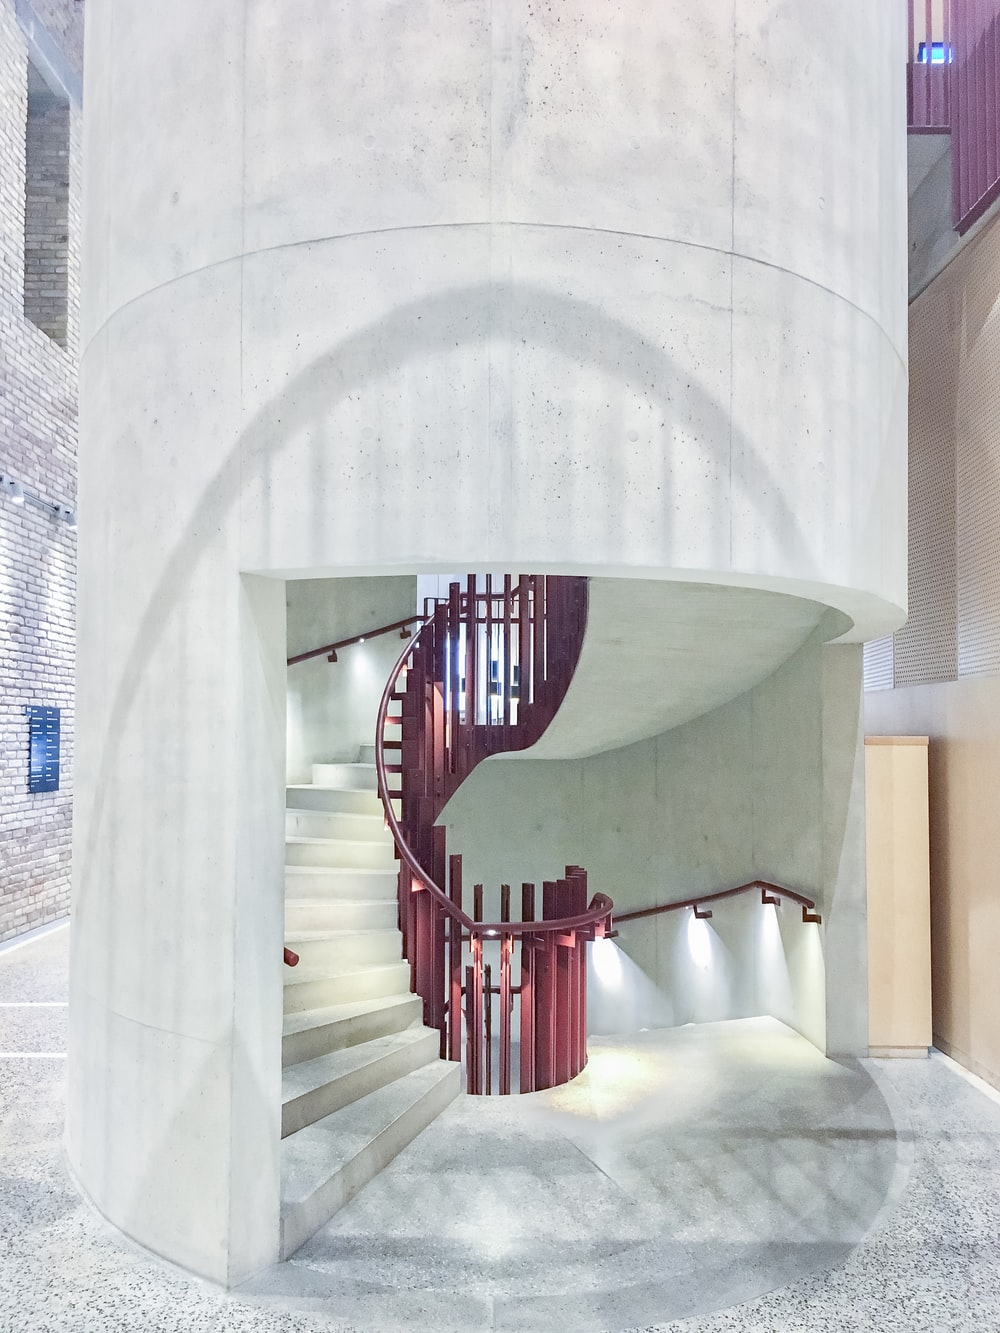 empty spiral stairs inside building